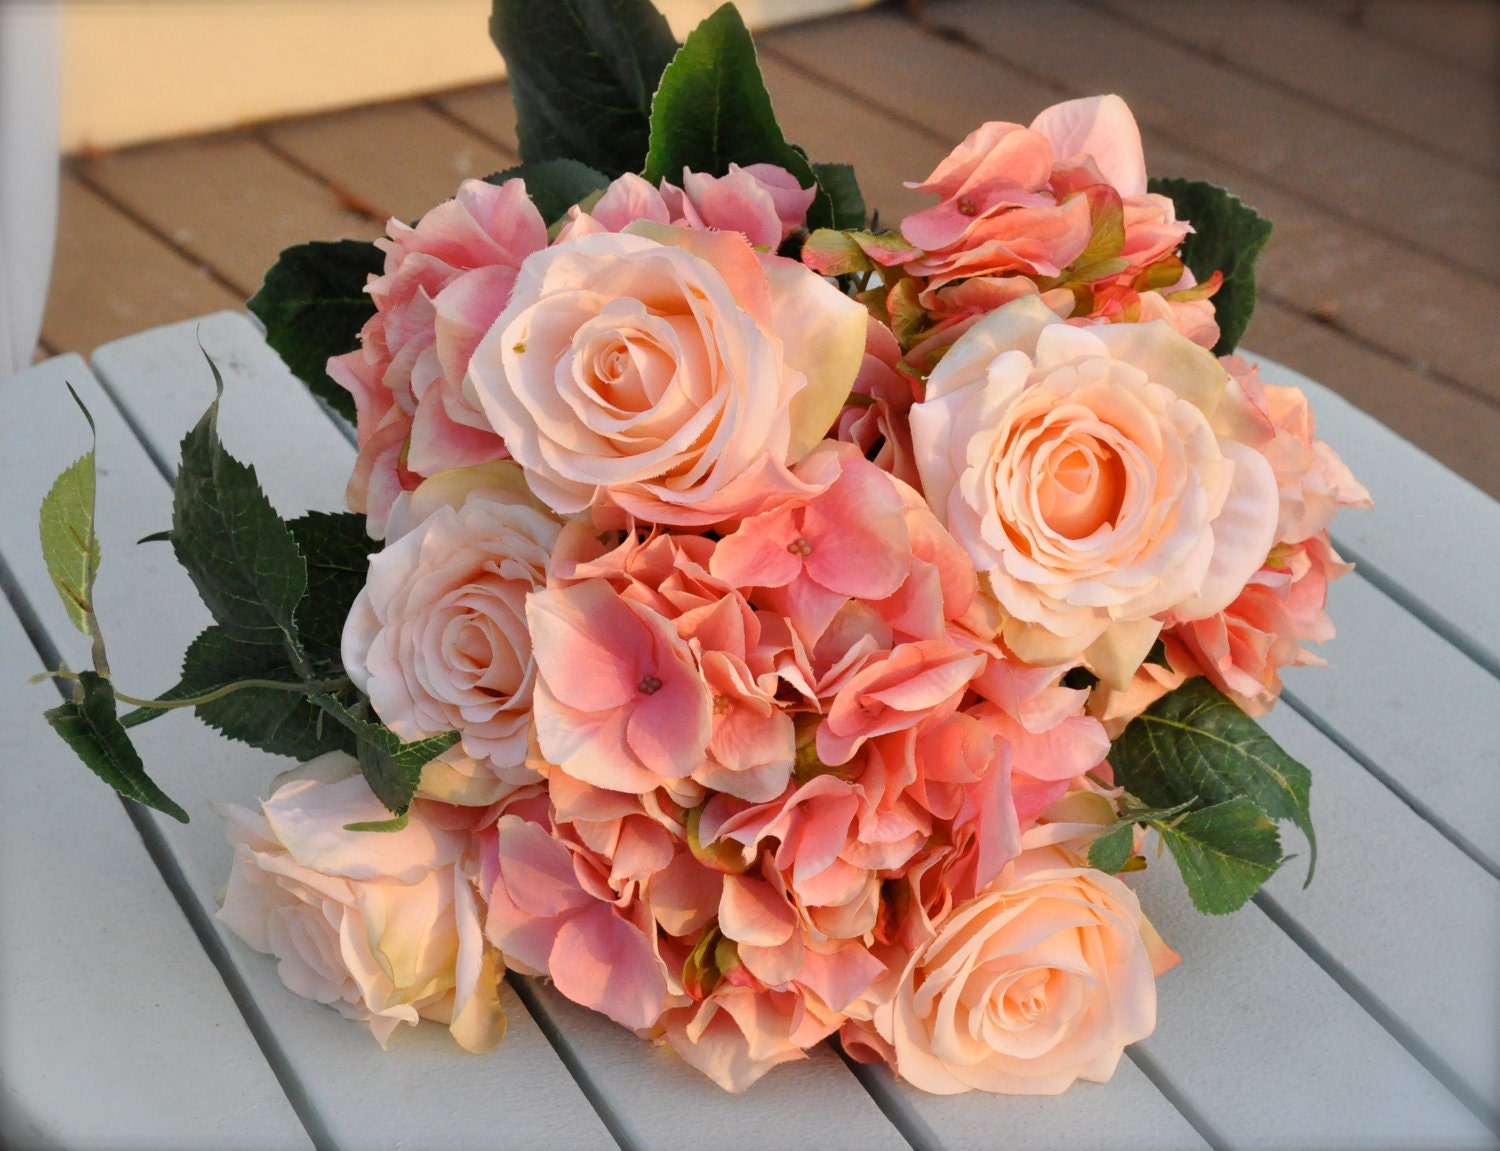 Coral Salmon Rose Wedding Bouquet By Hollysflowershoppe On Etsy